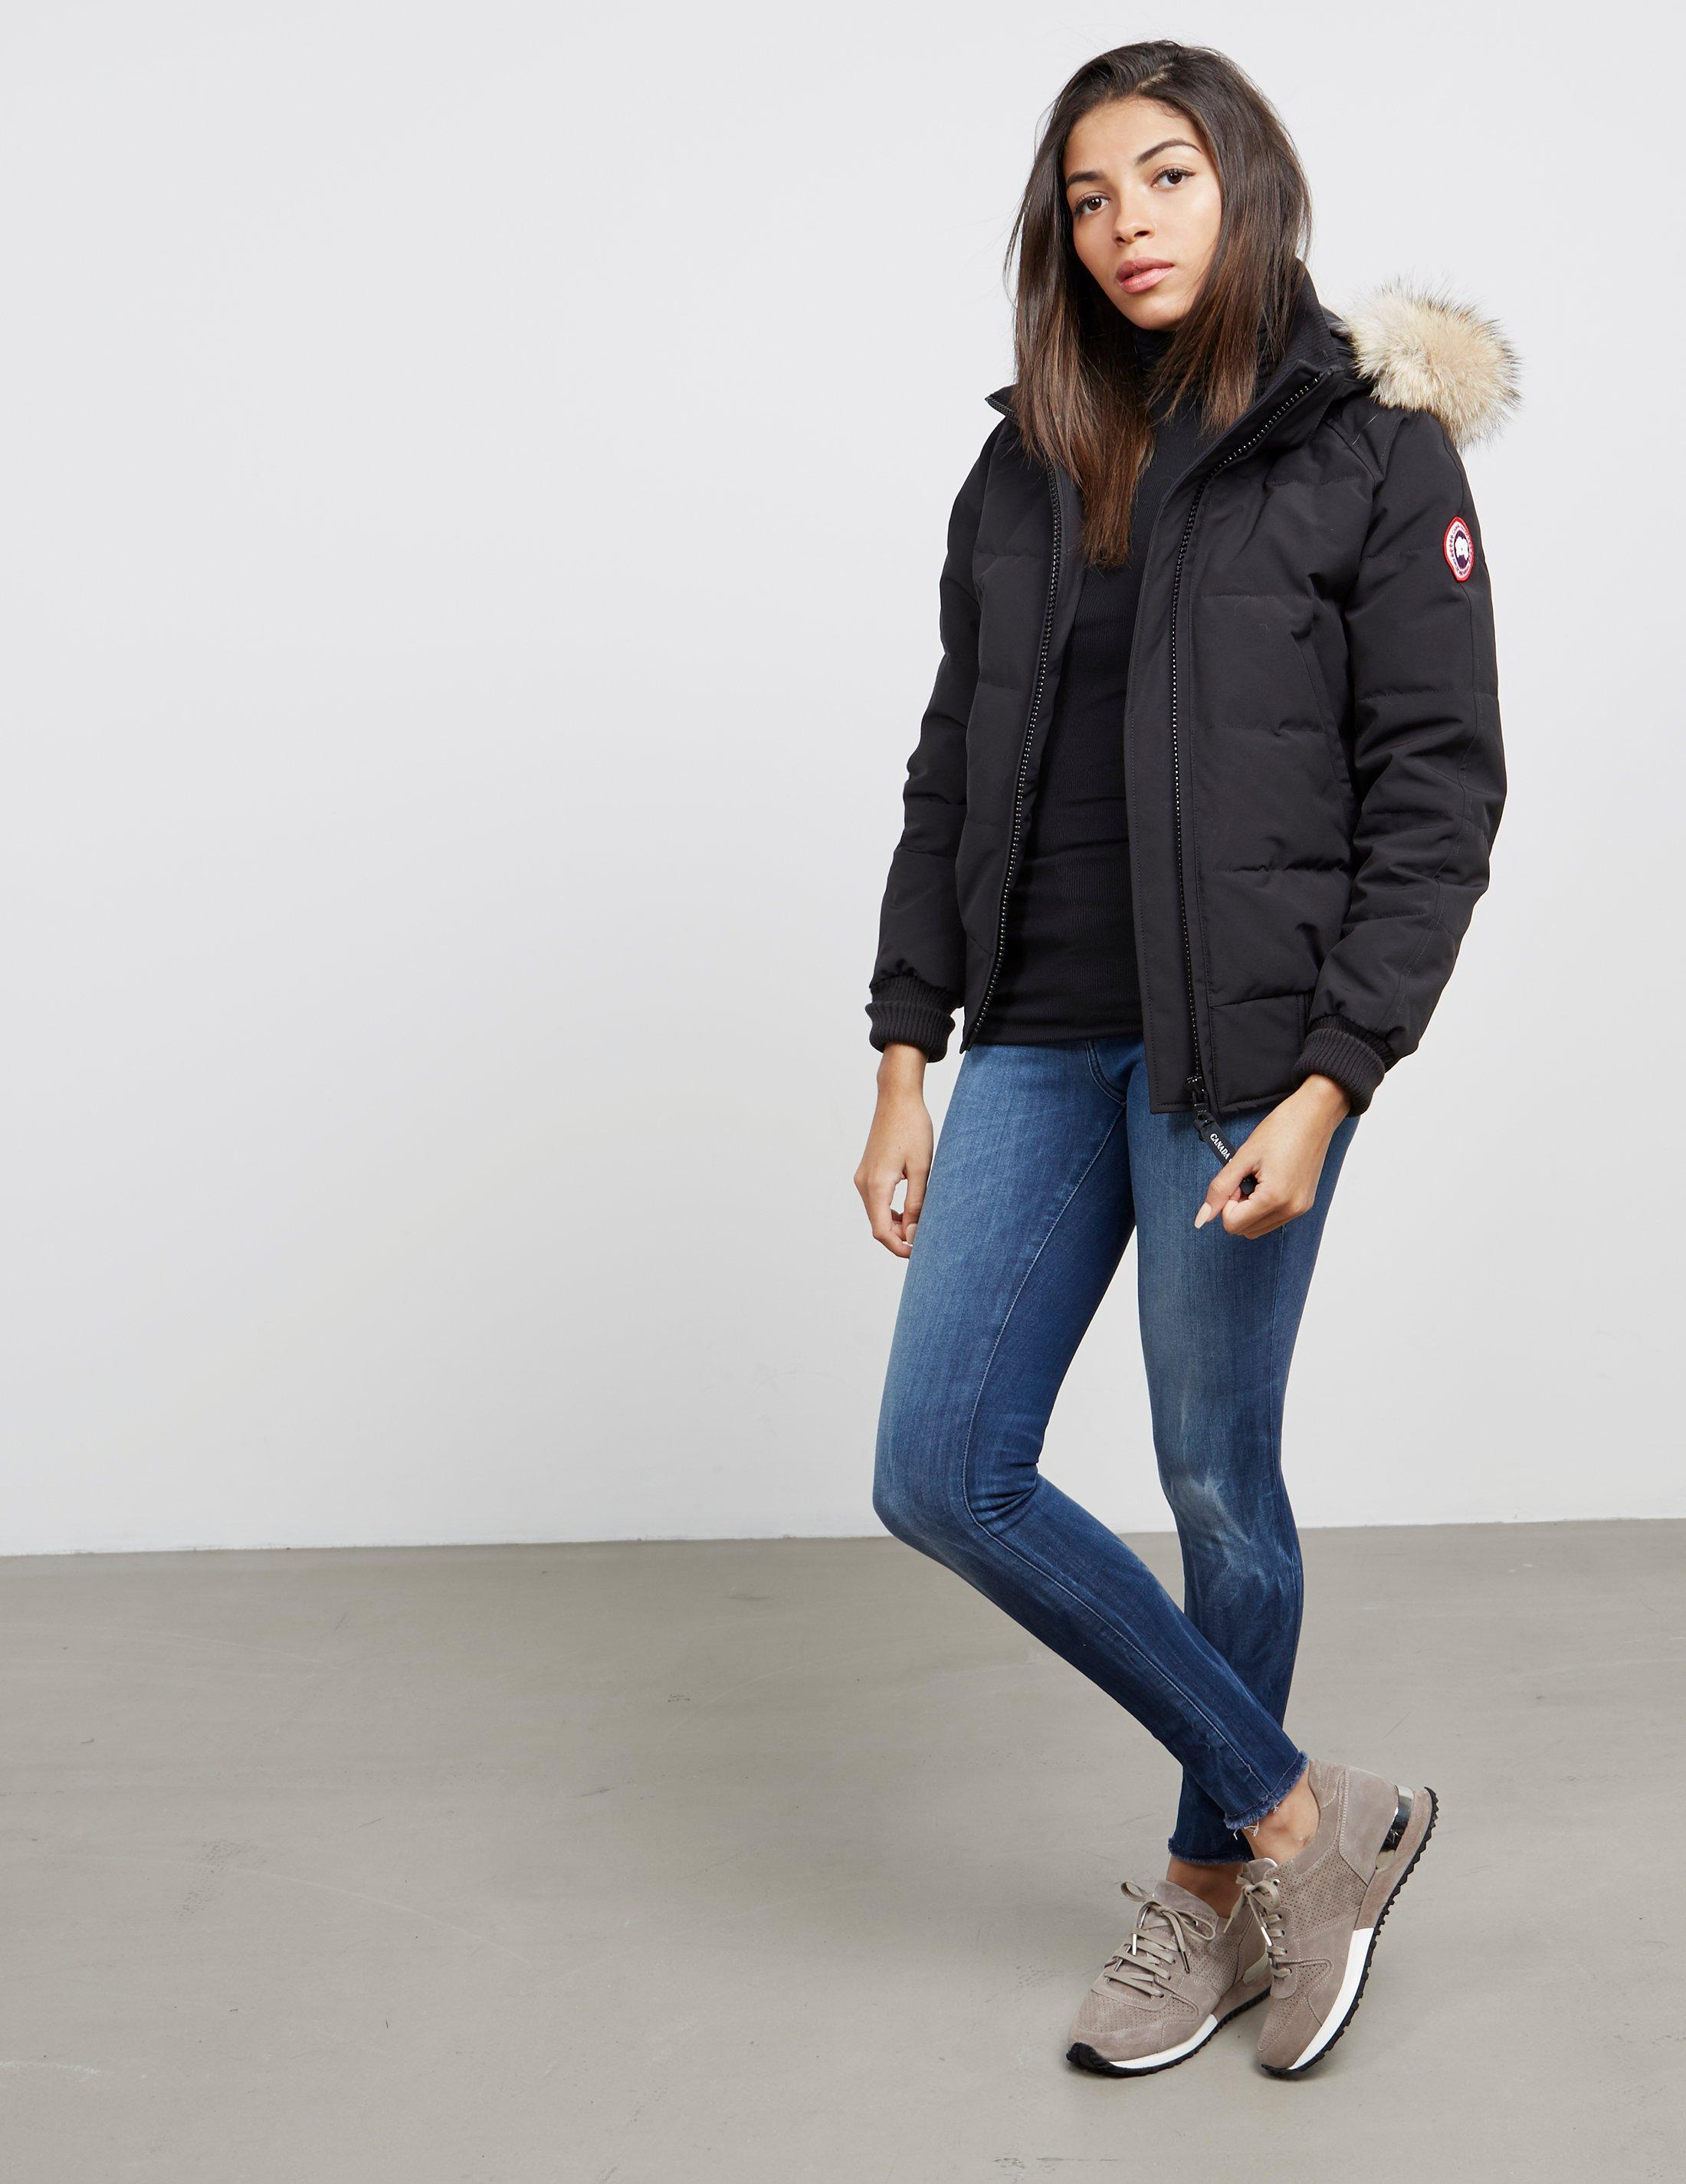 Lyst - Canada Goose Womens Savona Padded Bomber Jacket Black in Black ab419b1226